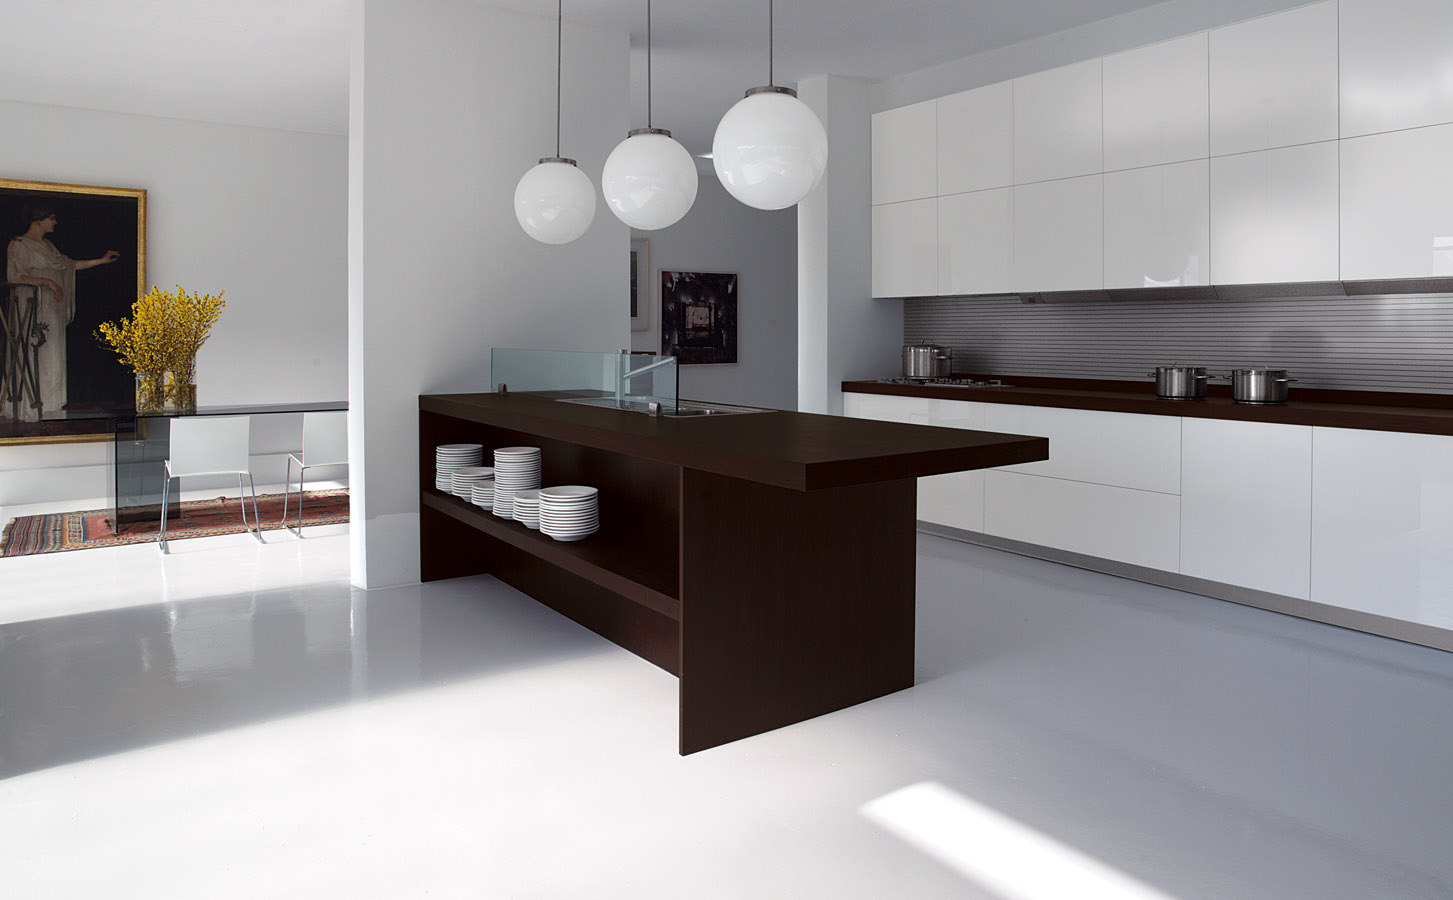 Contemporary kitchen interiors afreakatheart for Kitchen interior design styles